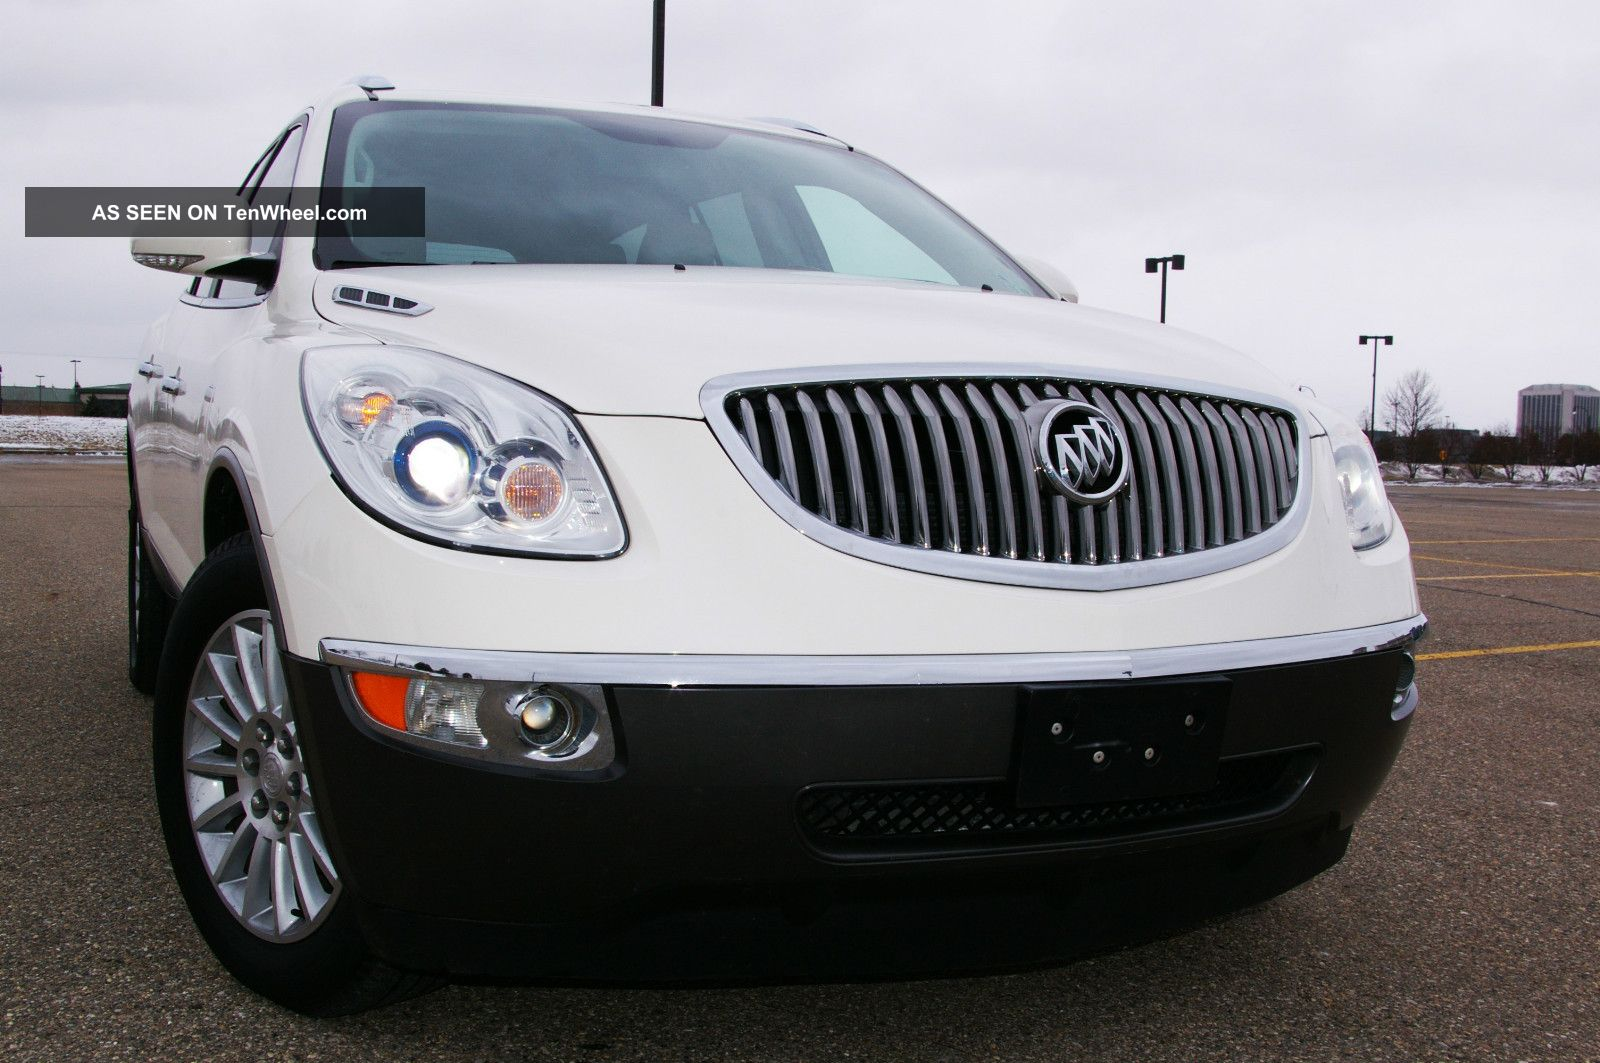 2011 Buick Enclave Cxl - 1, ,  Camera,  Sensors,  Hidlight,  Rebuit, Enclave photo